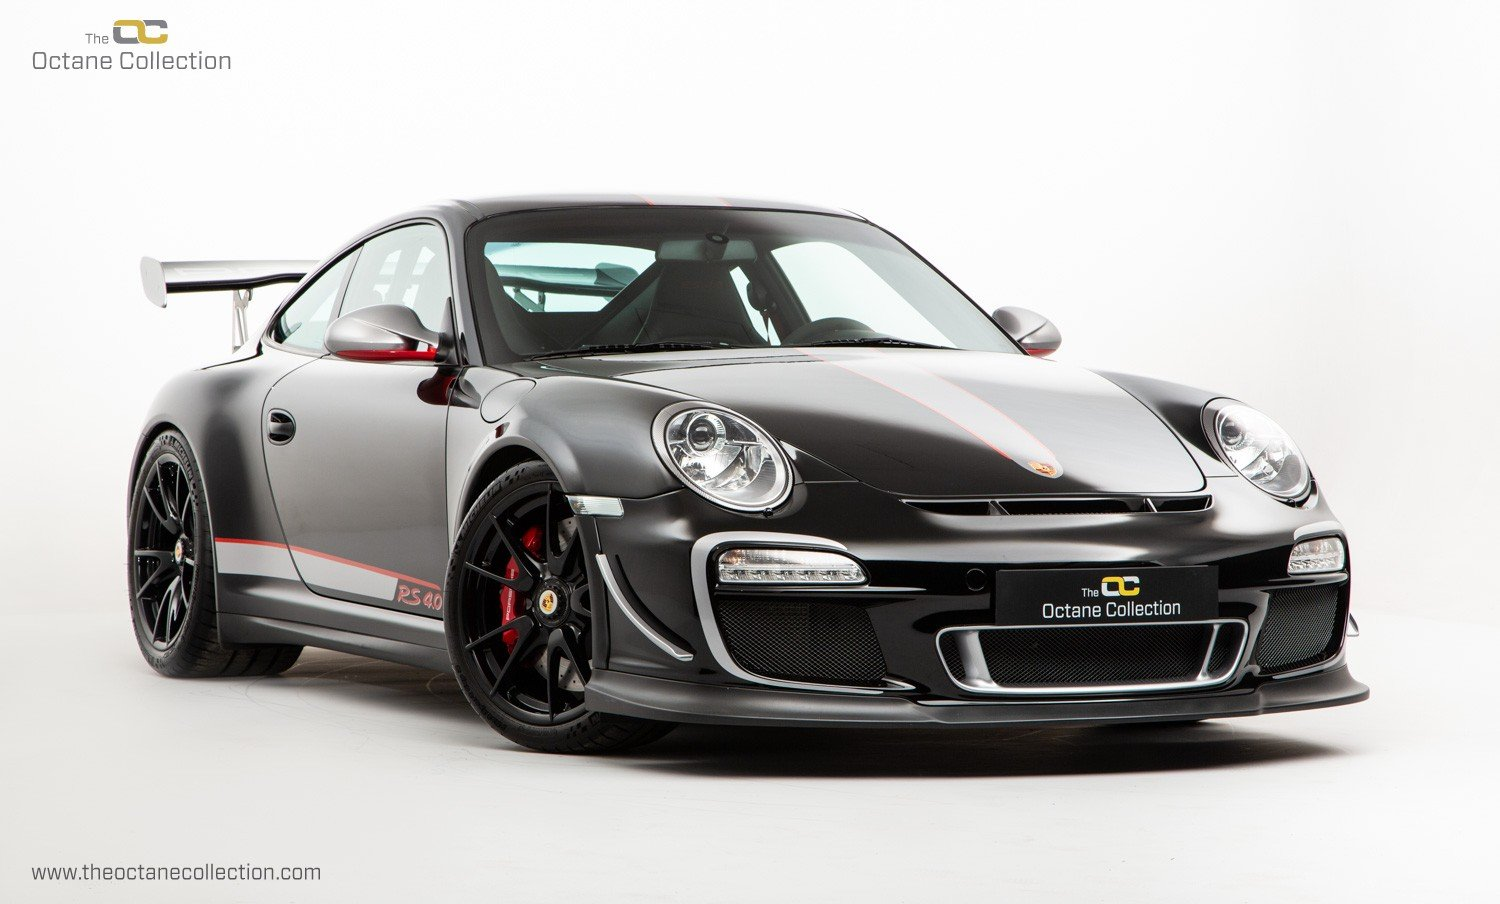 2011 PORSCHE 911 (997) GT3 RS 4.0 // C00 LHD GERMAN SUPPLIED For Sale (picture 1 of 6)